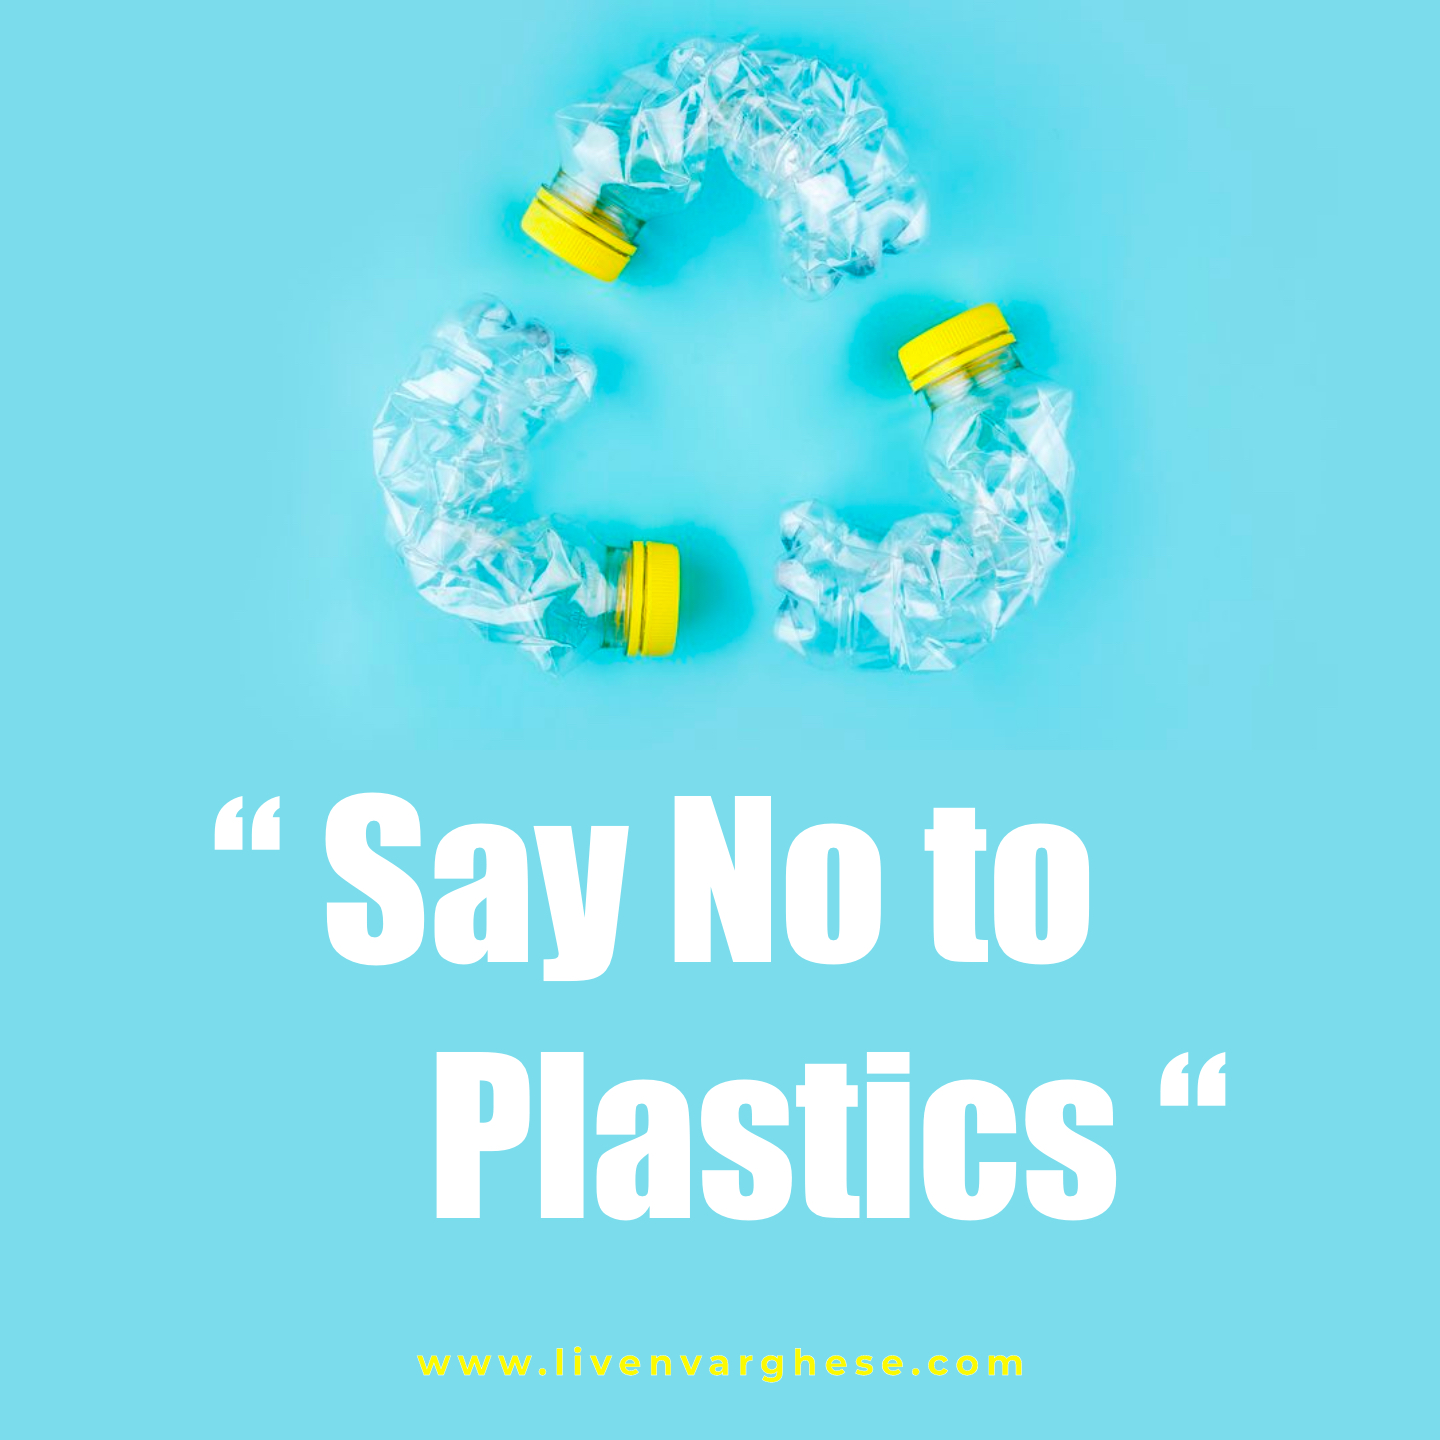 Say No to Plastics